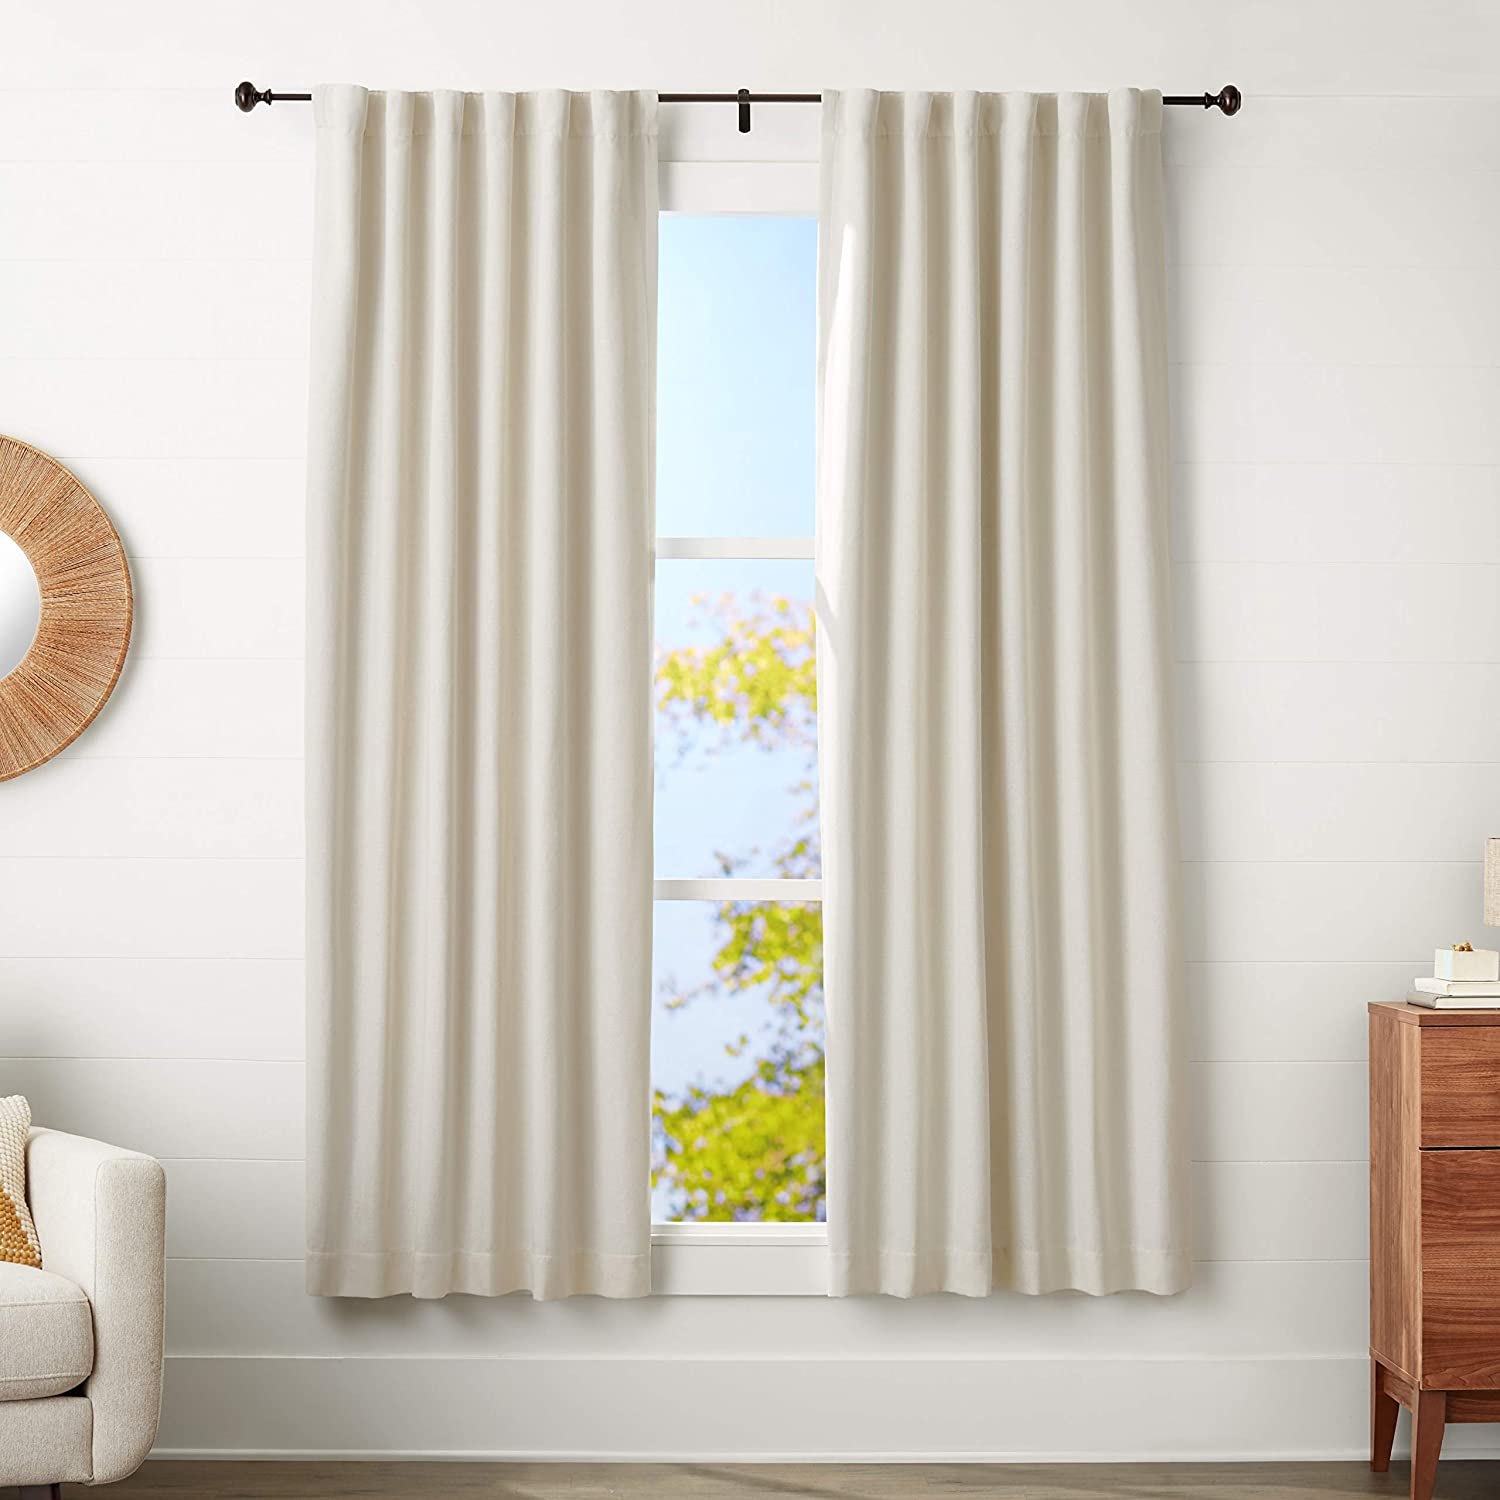 Amazon Basics 5 8-Inch Curtain Rod with - 48 NEW before selling ☆ 88 Rapid rise to Knob Finials